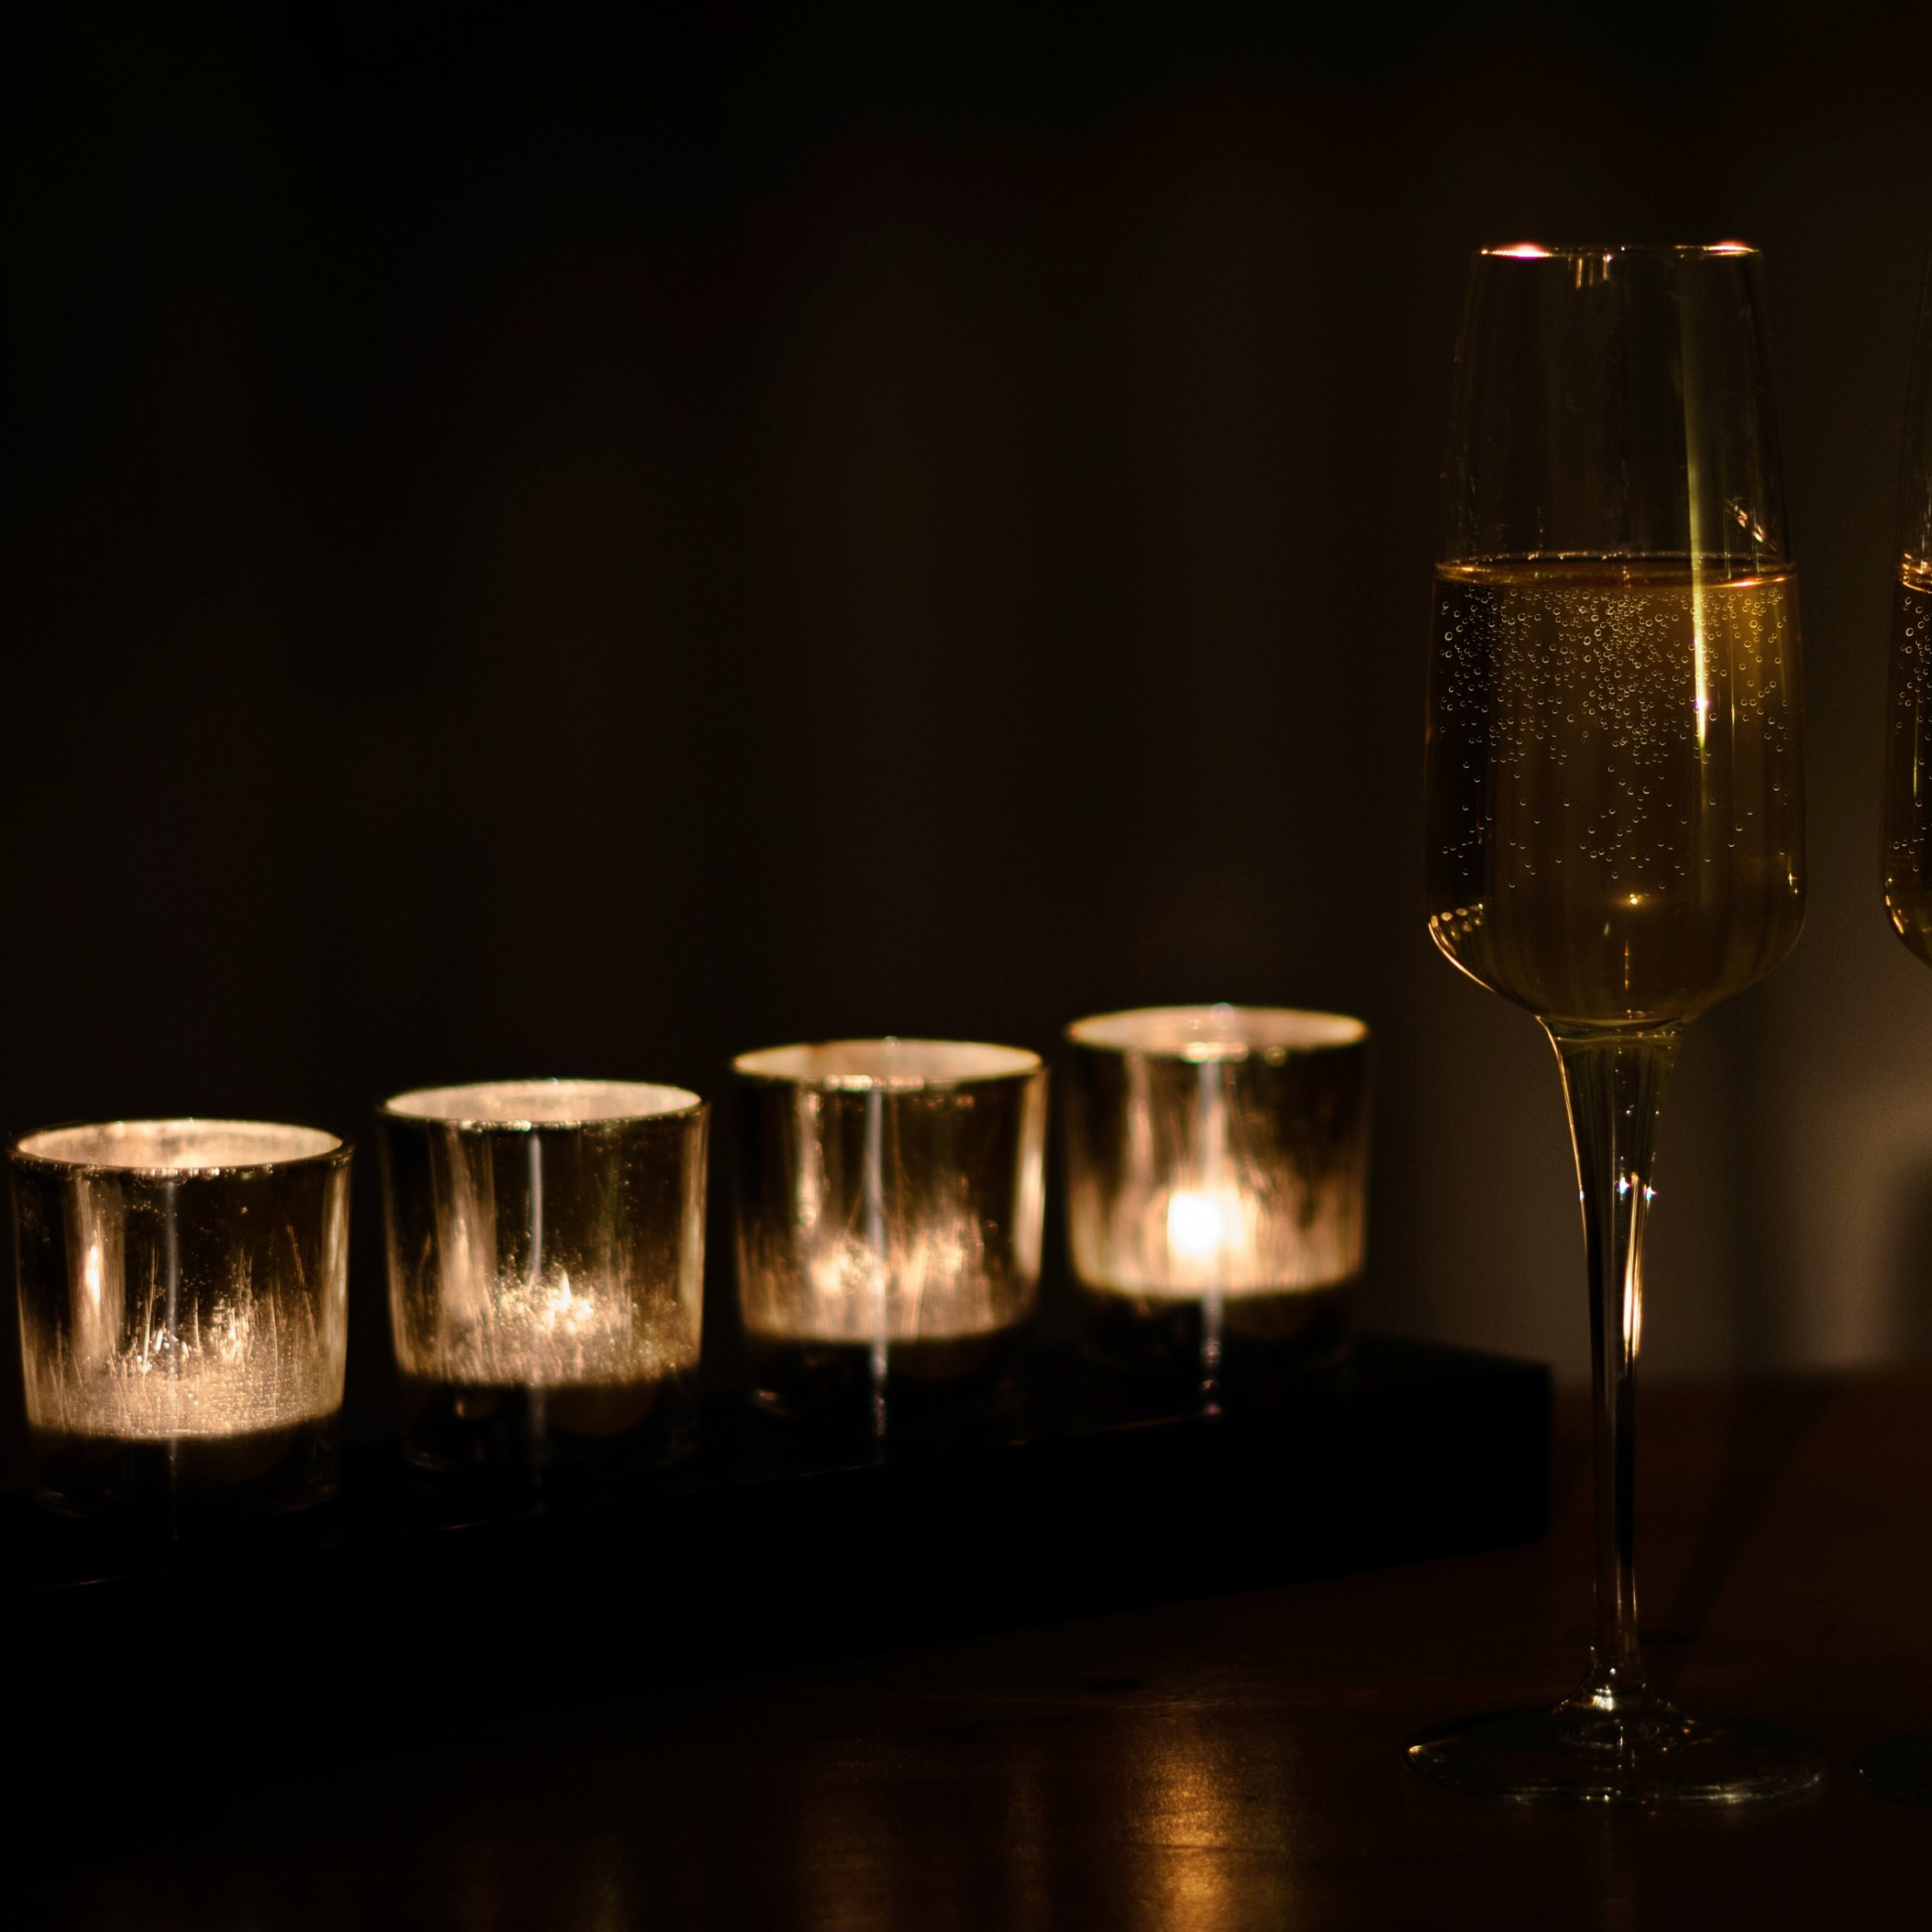 Champagne and candles wallpaper 2224x2224